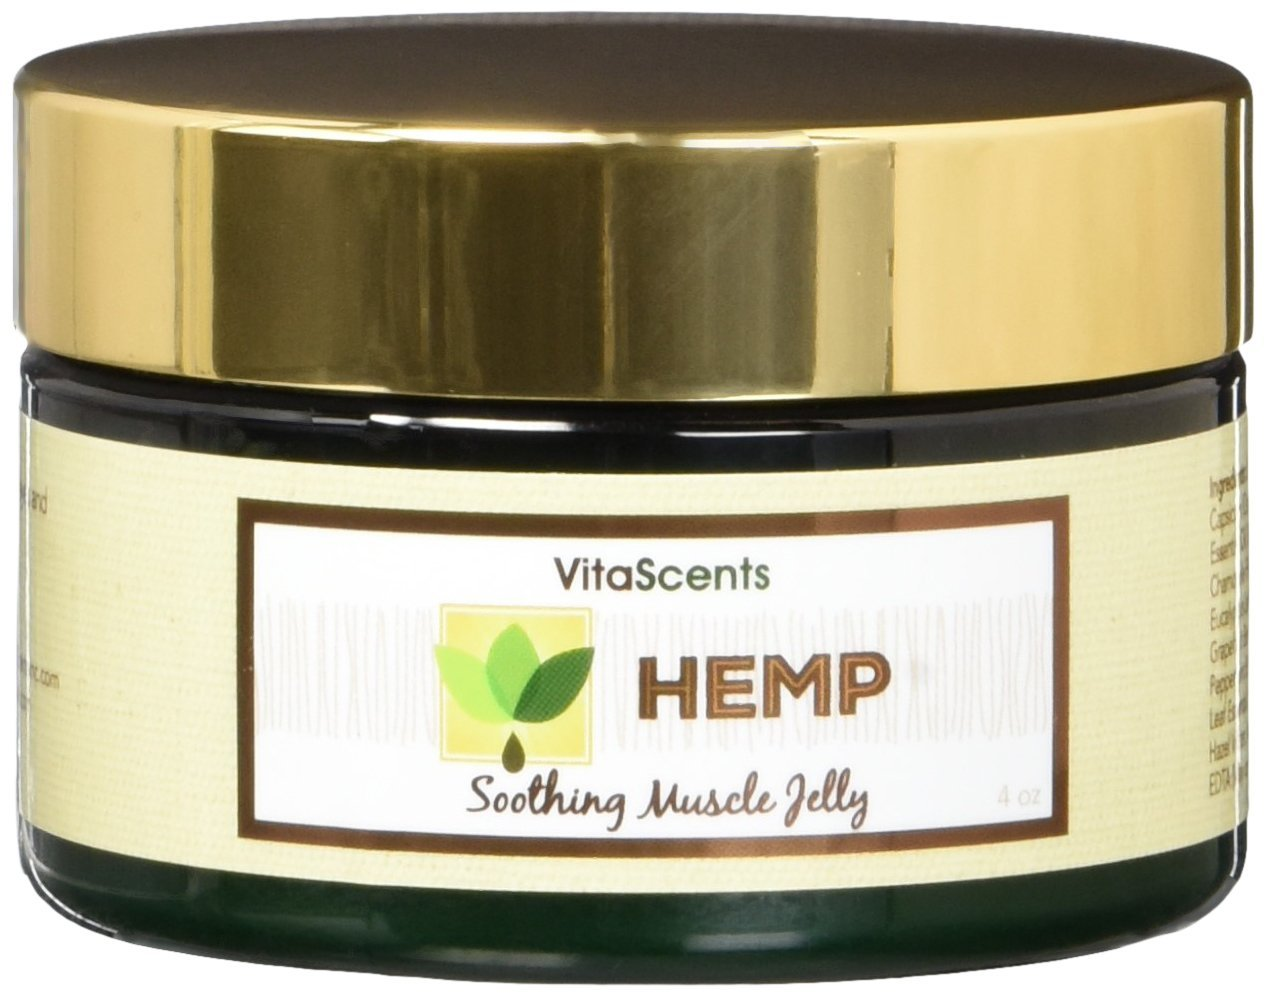 Vitascents Hemp Soothing Muscle Jelly Beauty Barn Kid Citronella Body Oil